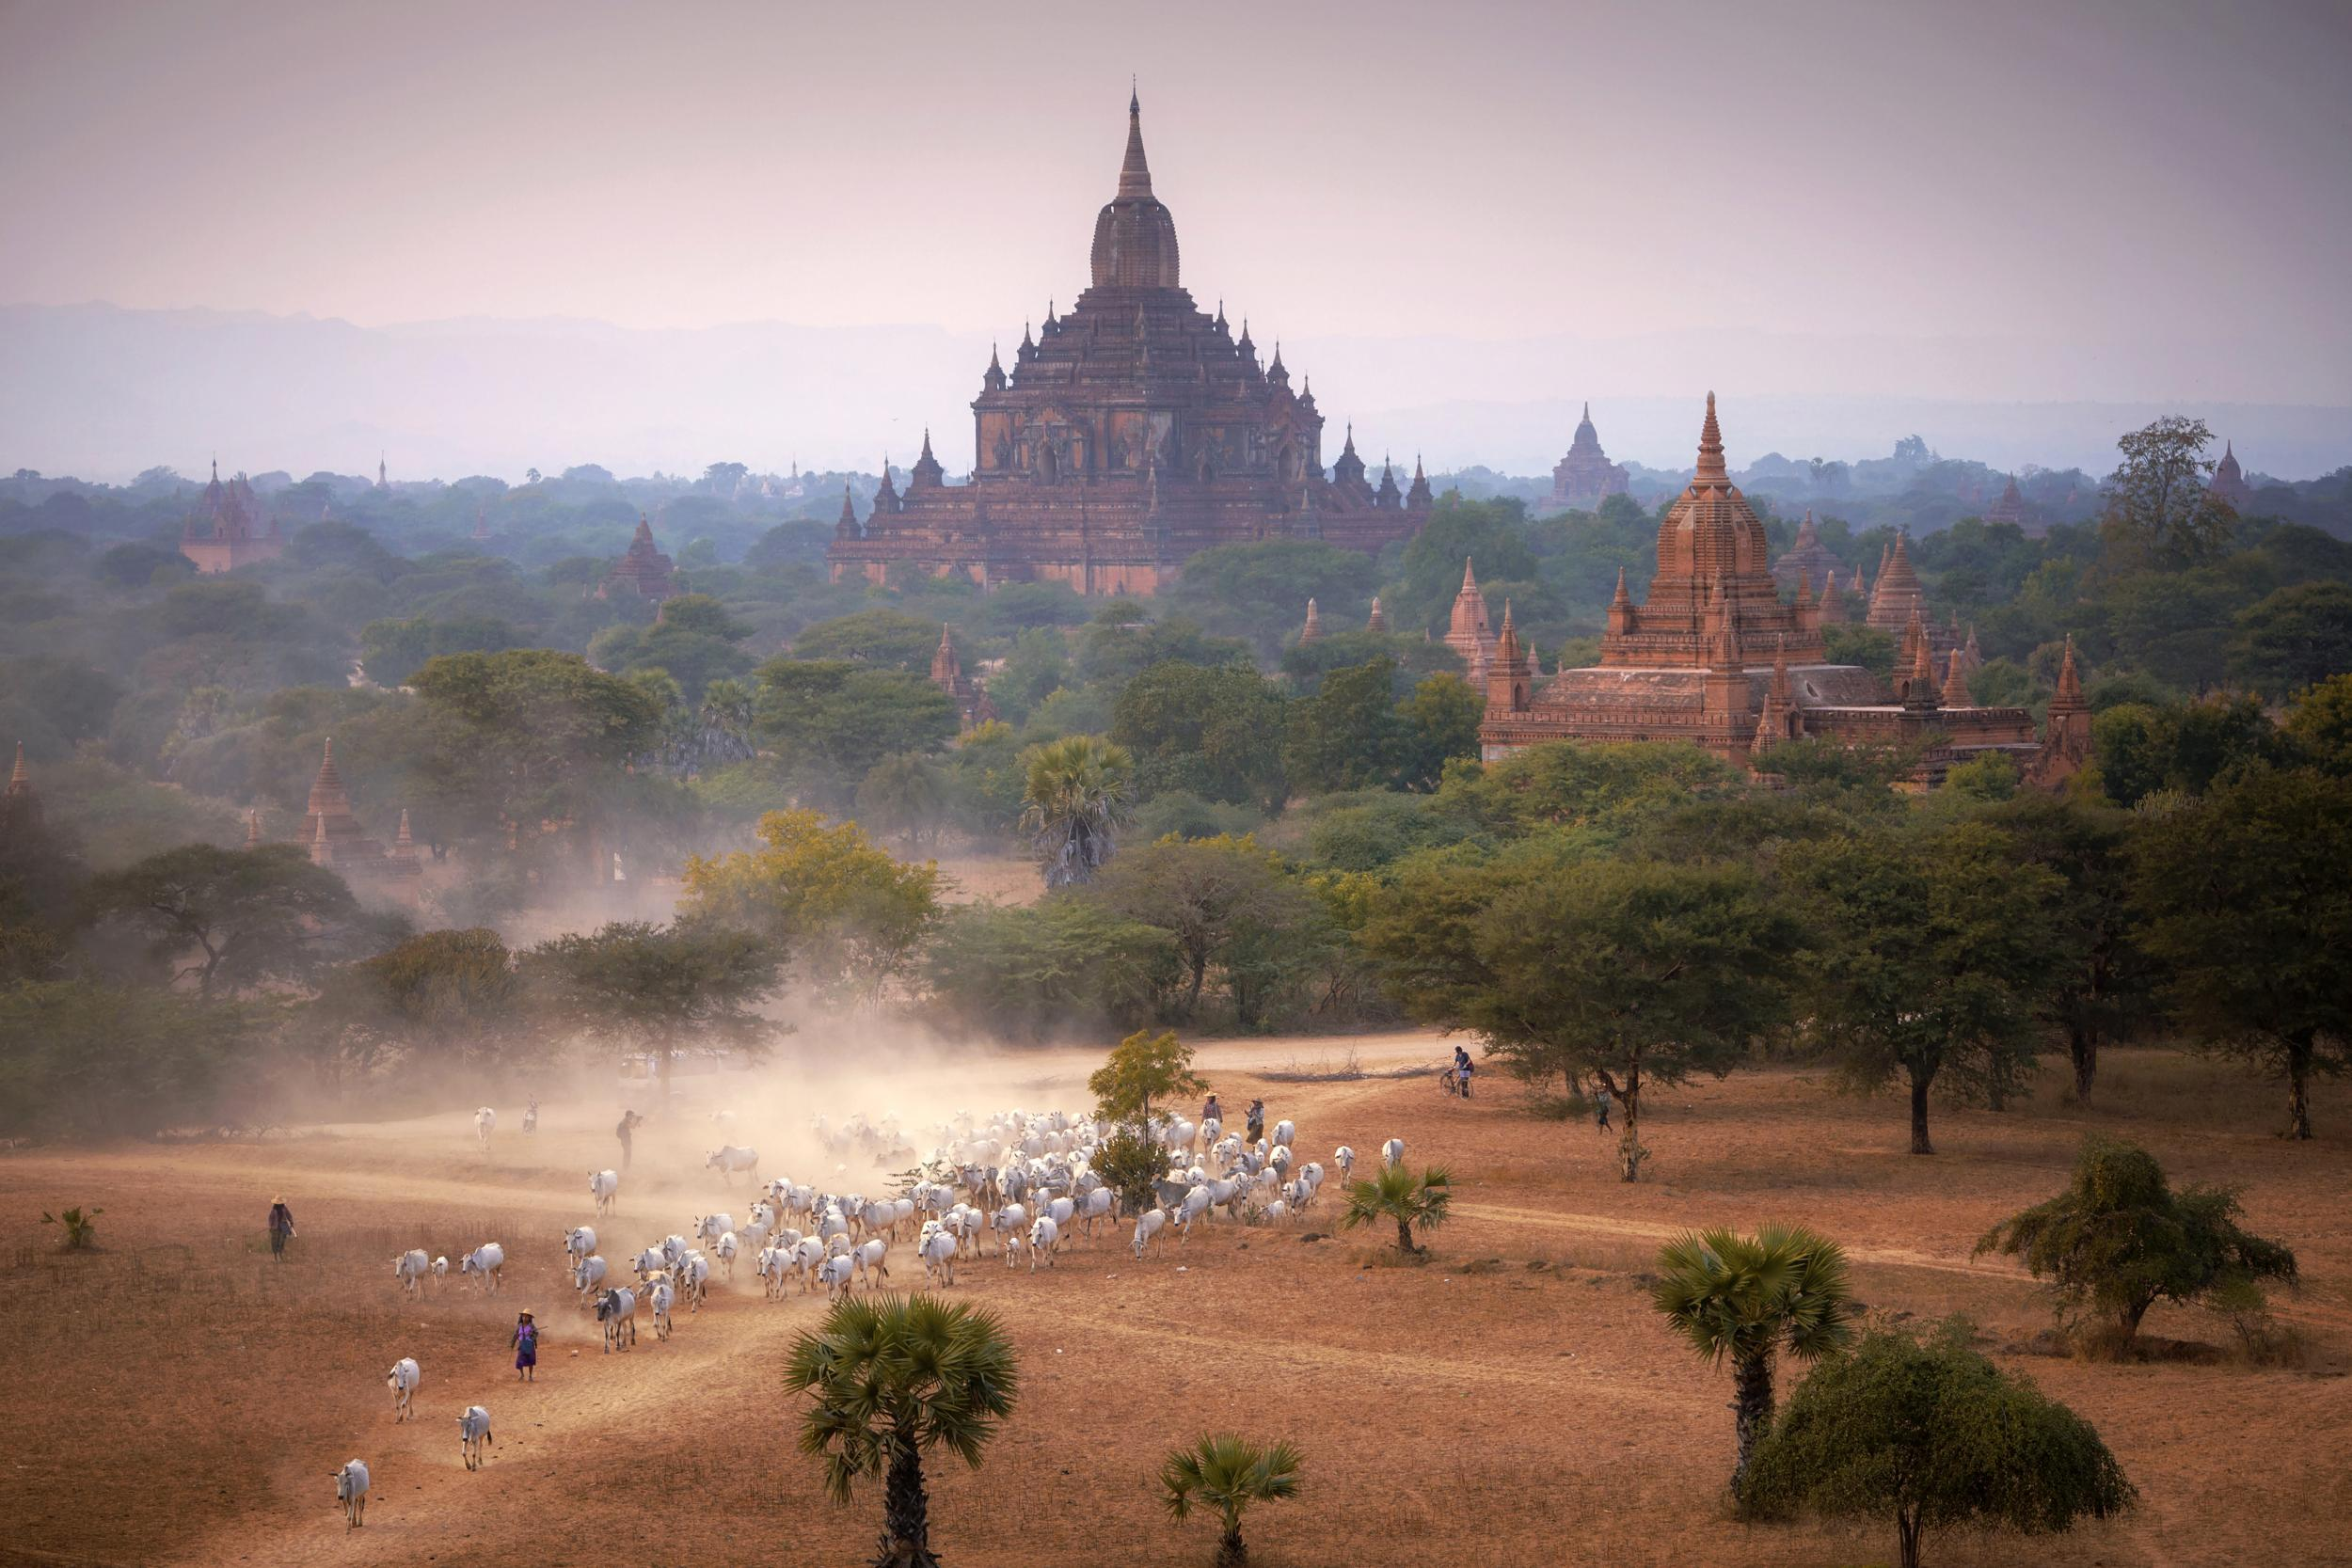 UNESCO Youth Eyes on the Silk Roads Photo Contest Winners. © Pyae Phyo Thet Paing Photography.  The Heritage Monument in Nature of Bagan in Burma, Myanmar